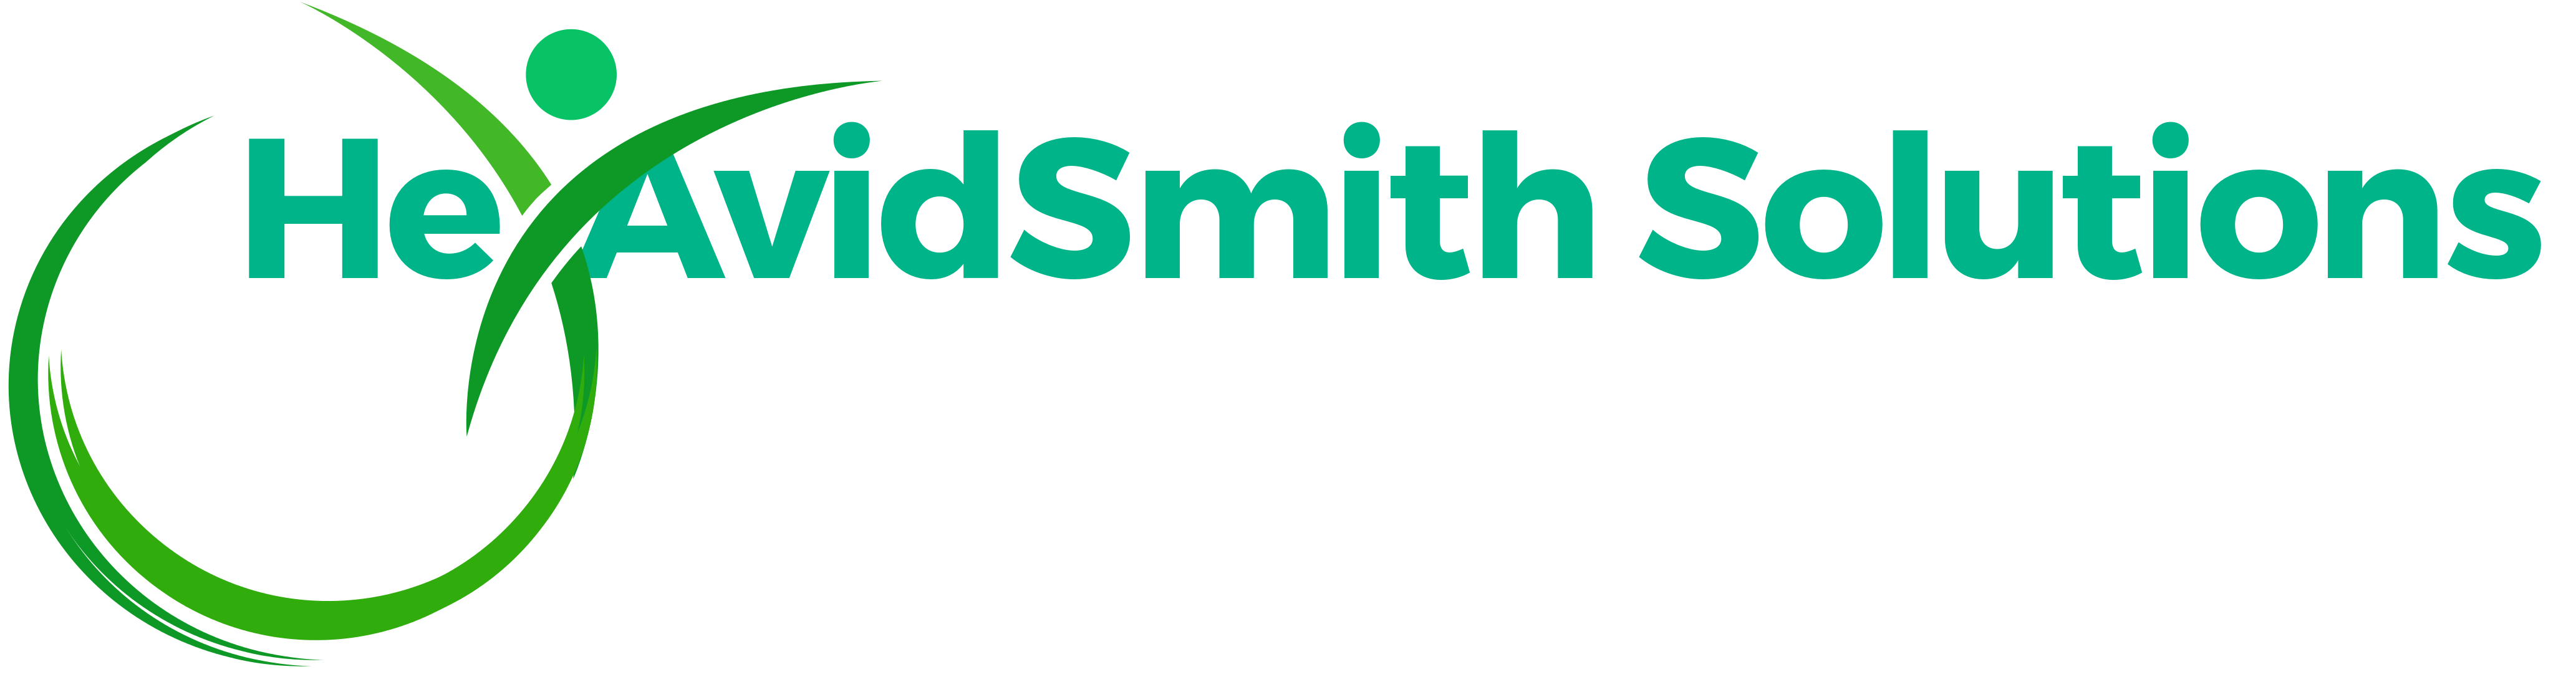 HexAvid Smith Solutions Ltd